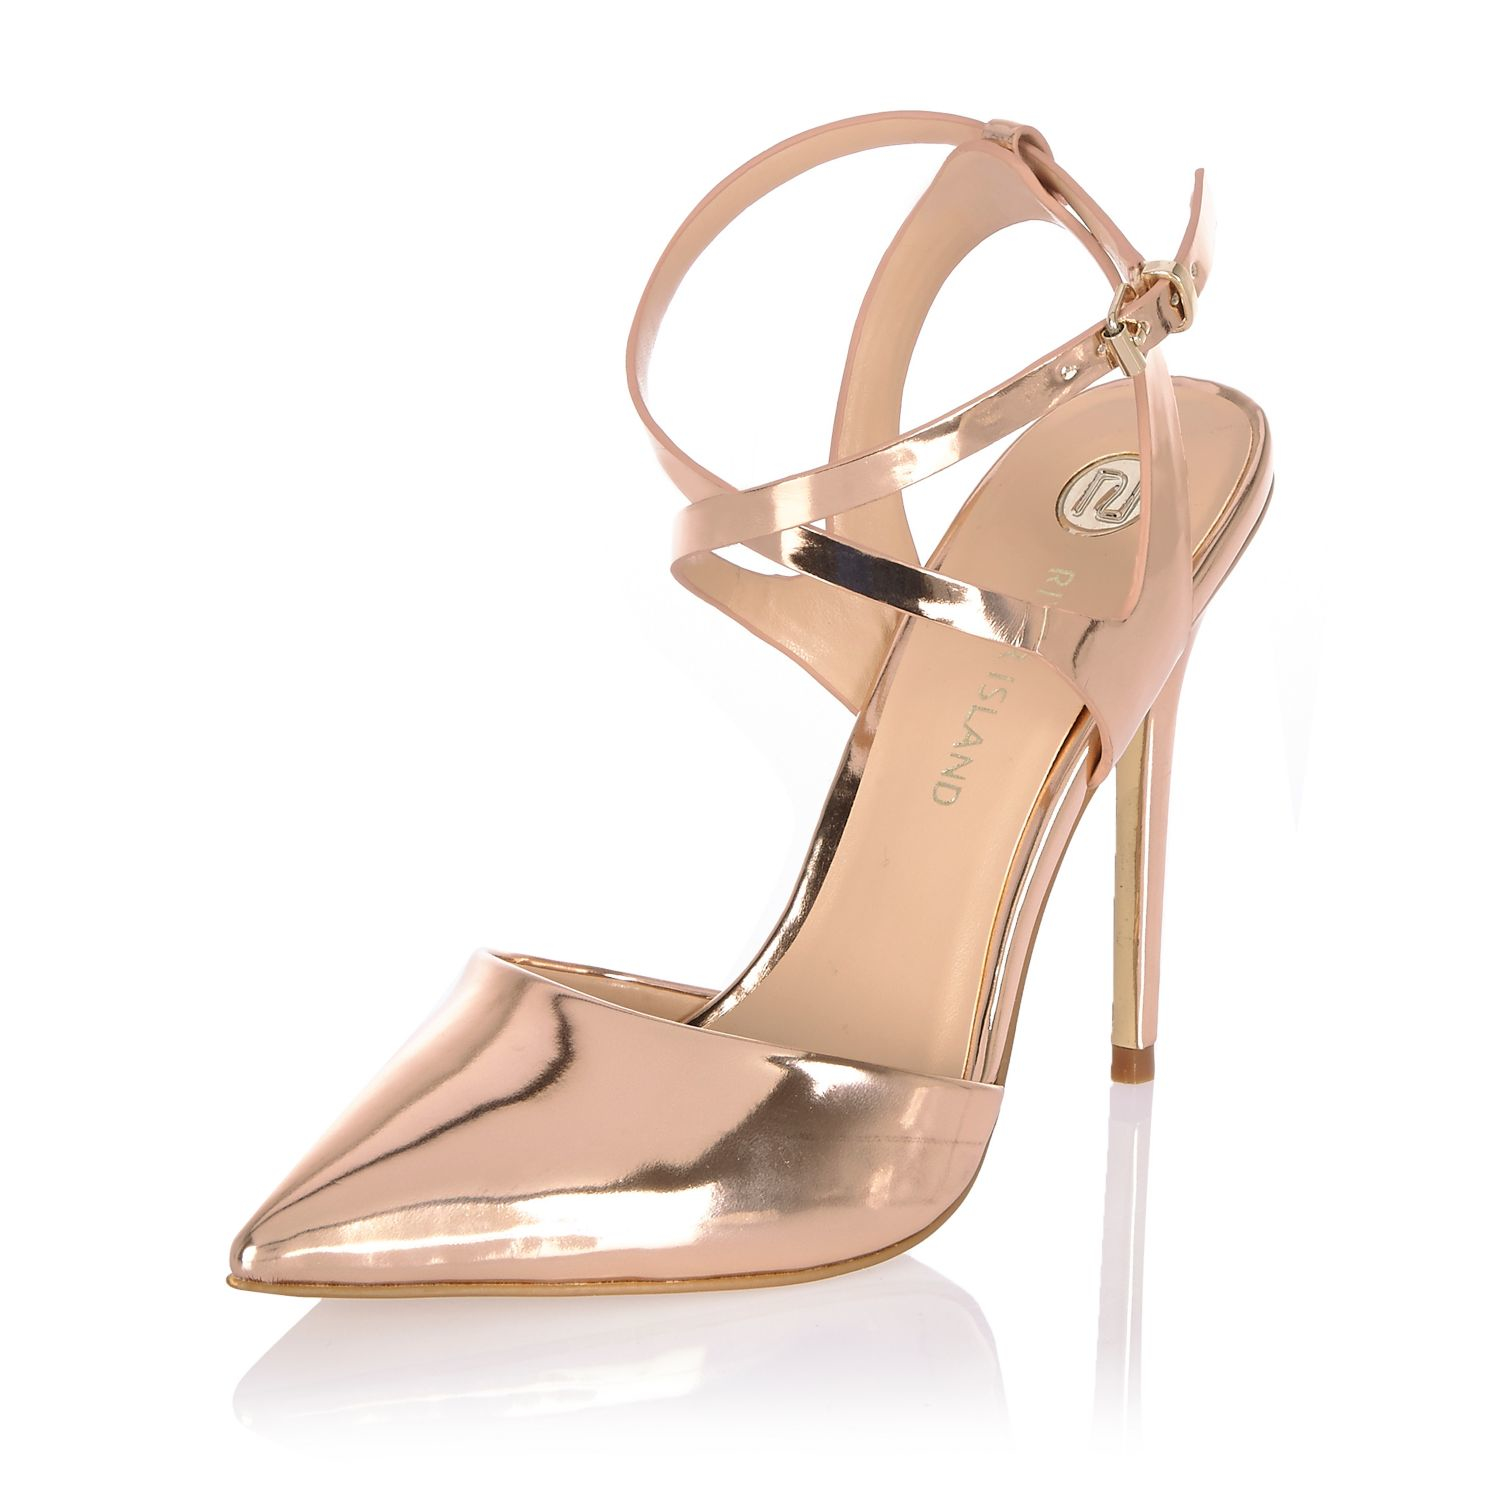 bba989ce206 Lyst - River Island Metallic Gold Pointed Court Heels in Metallic